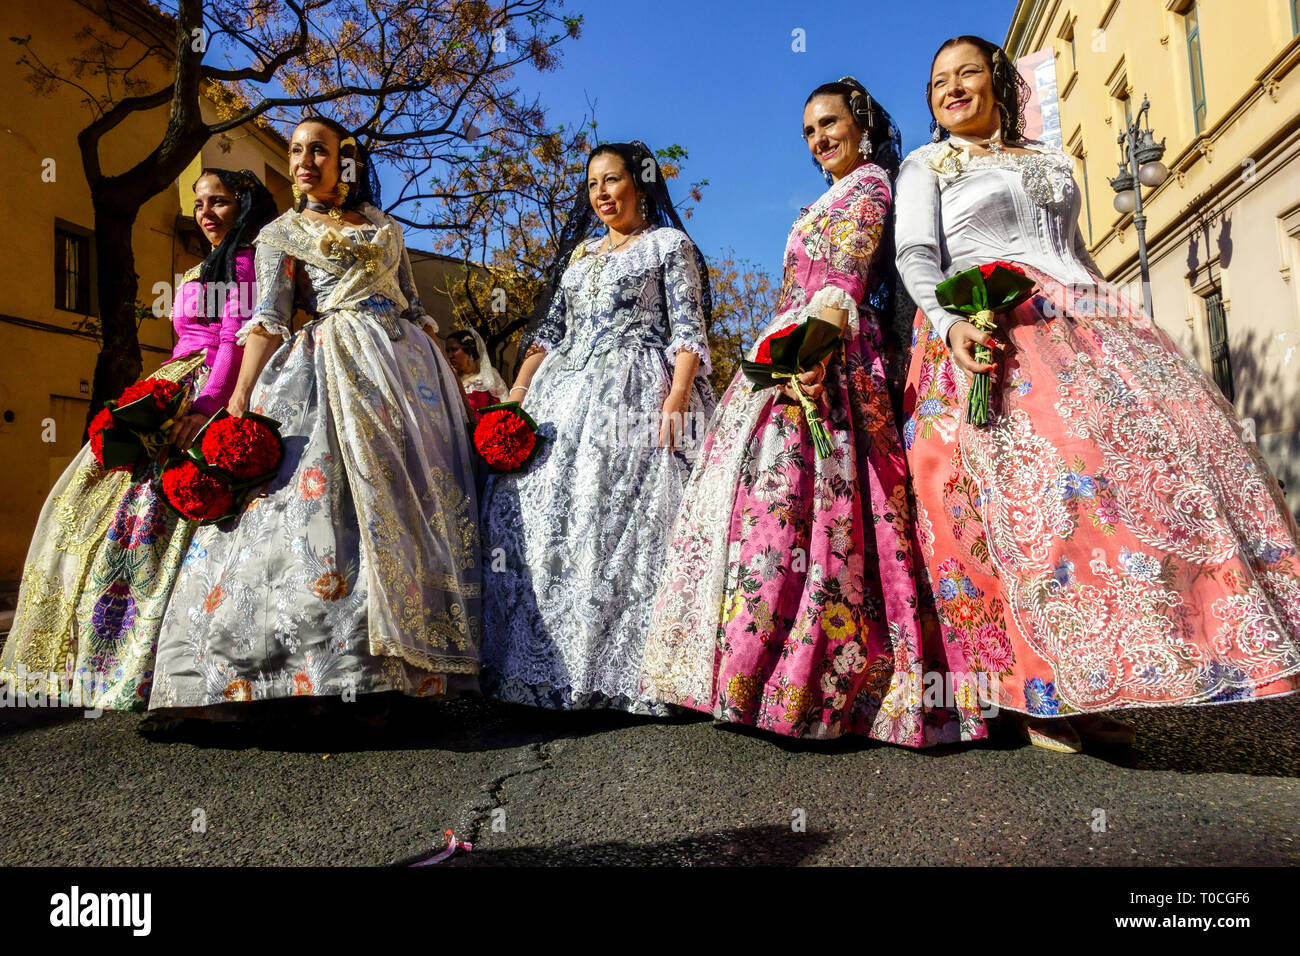 Valencia Fallas, Women in festive folk costumes in procession to the Virgin Mary with flowers to her honor, Spain Stock Photo